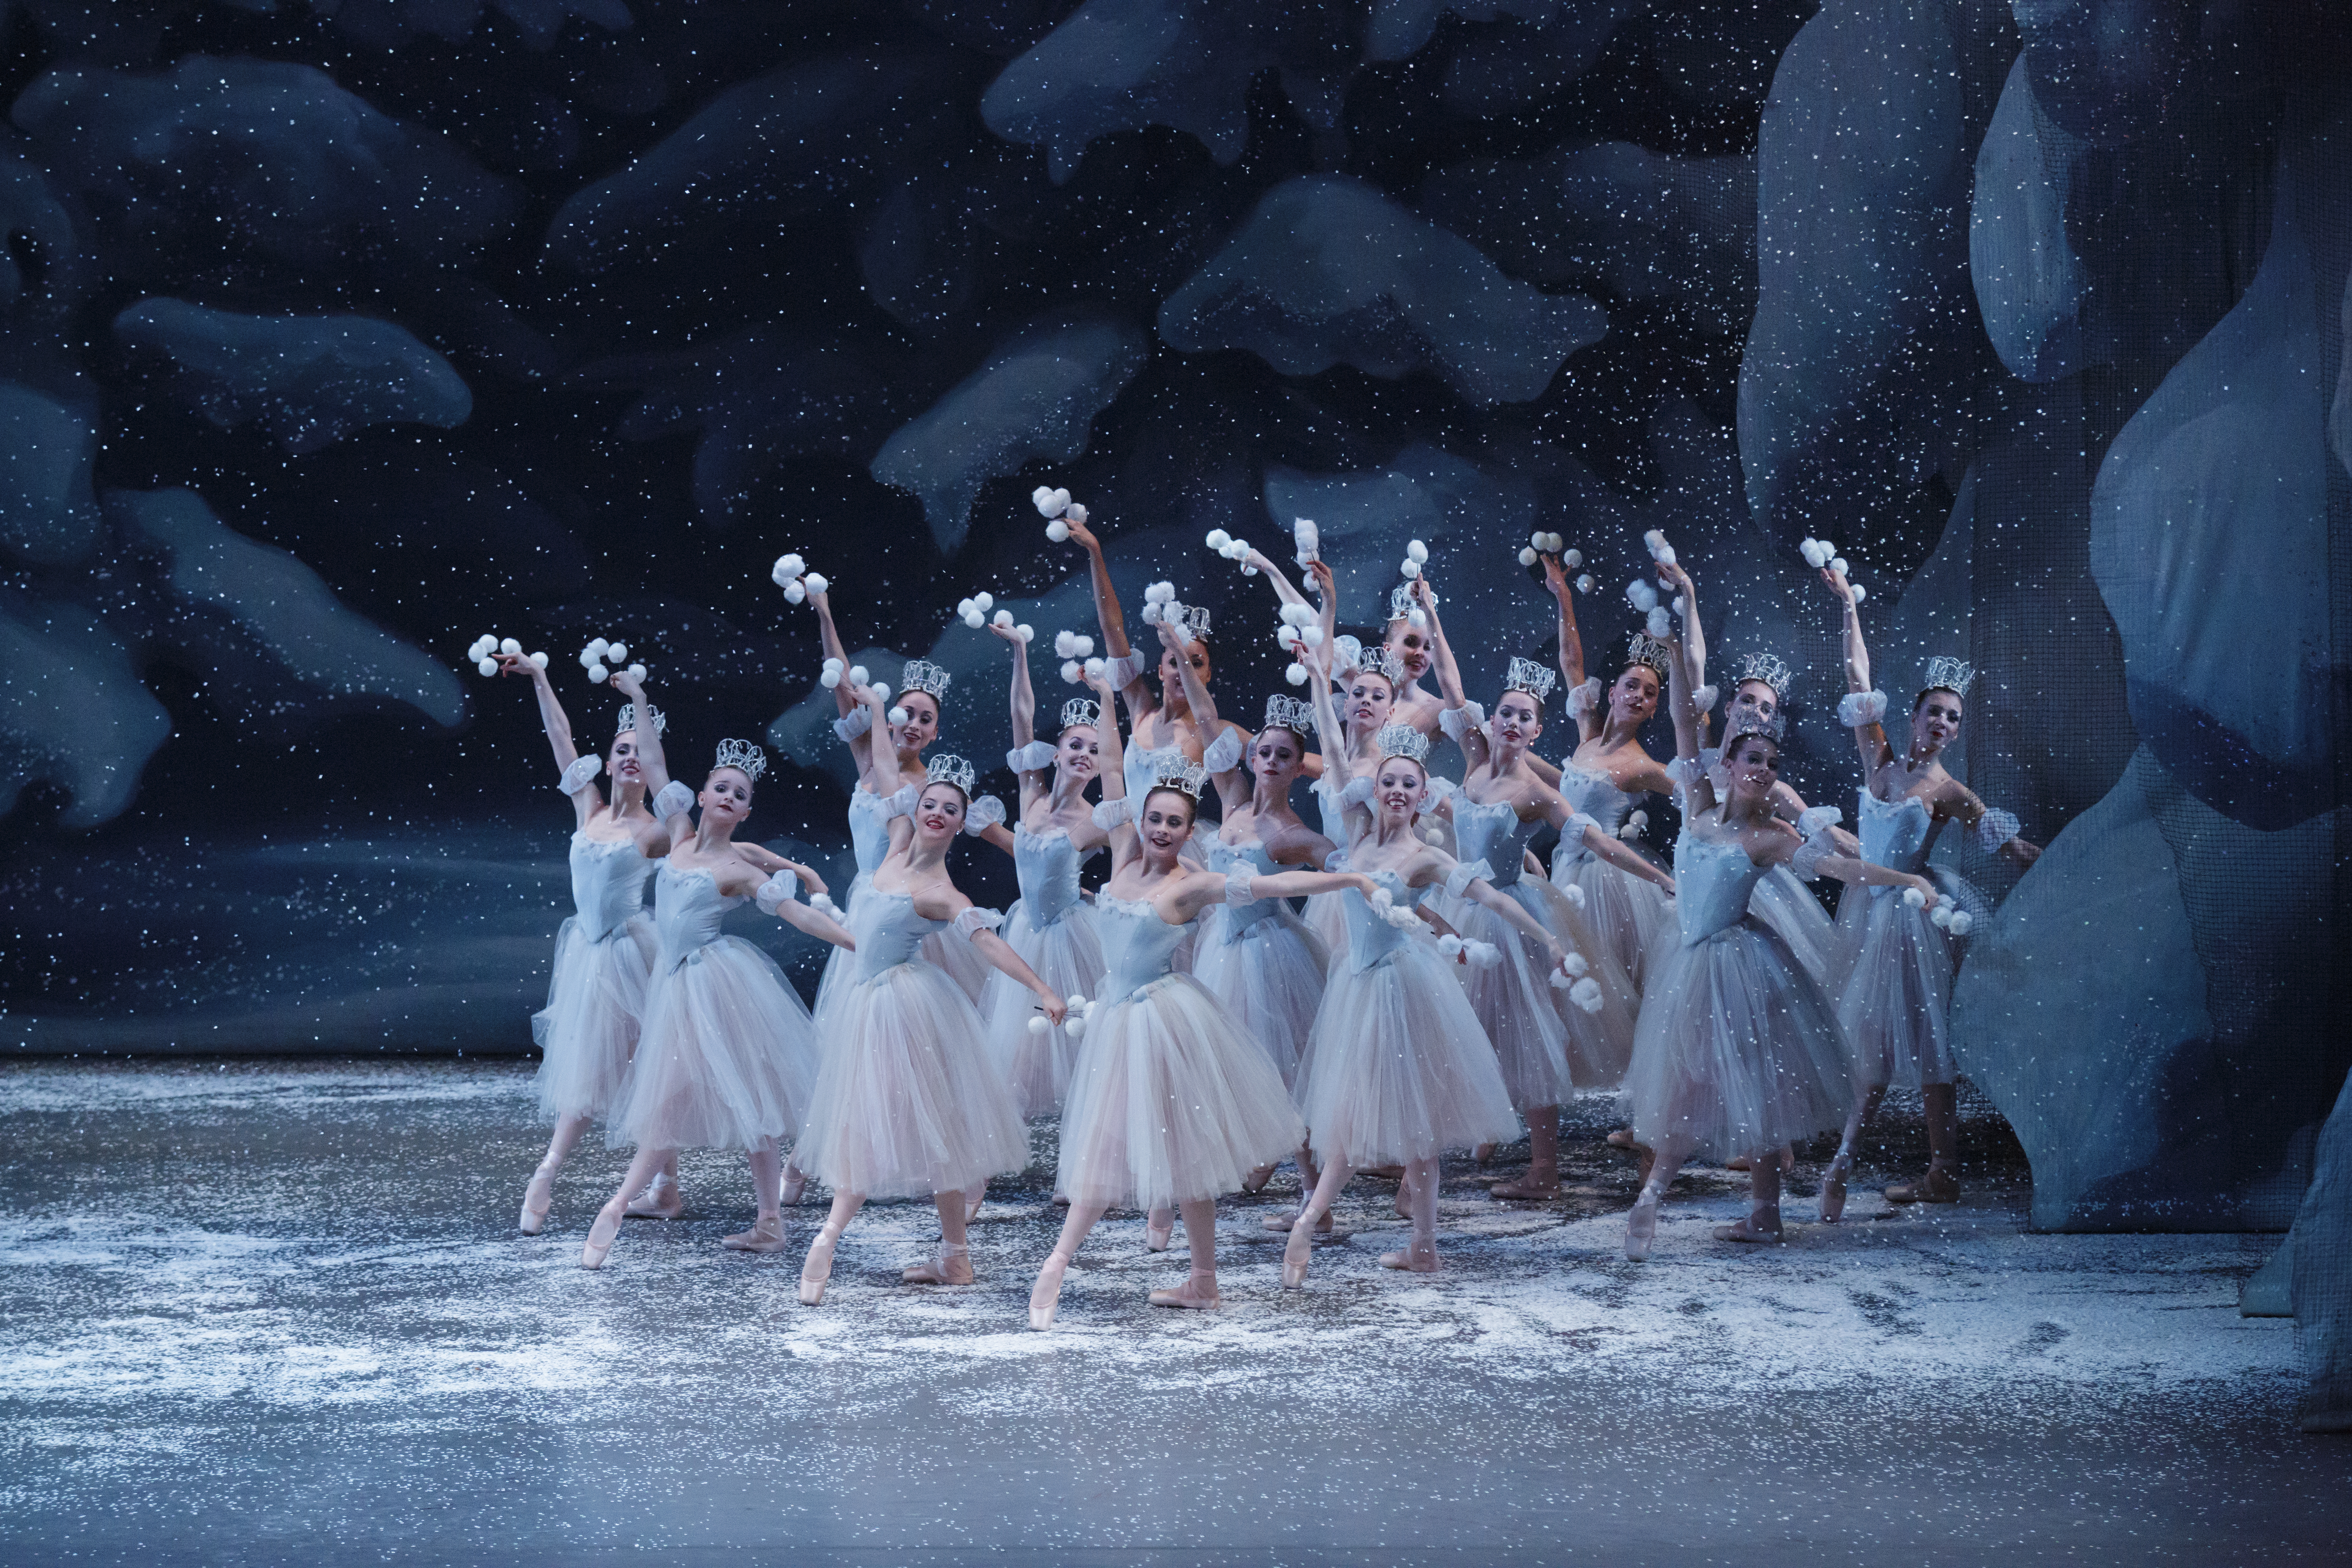 Nutcracker-Snow-c36808-12.jpg